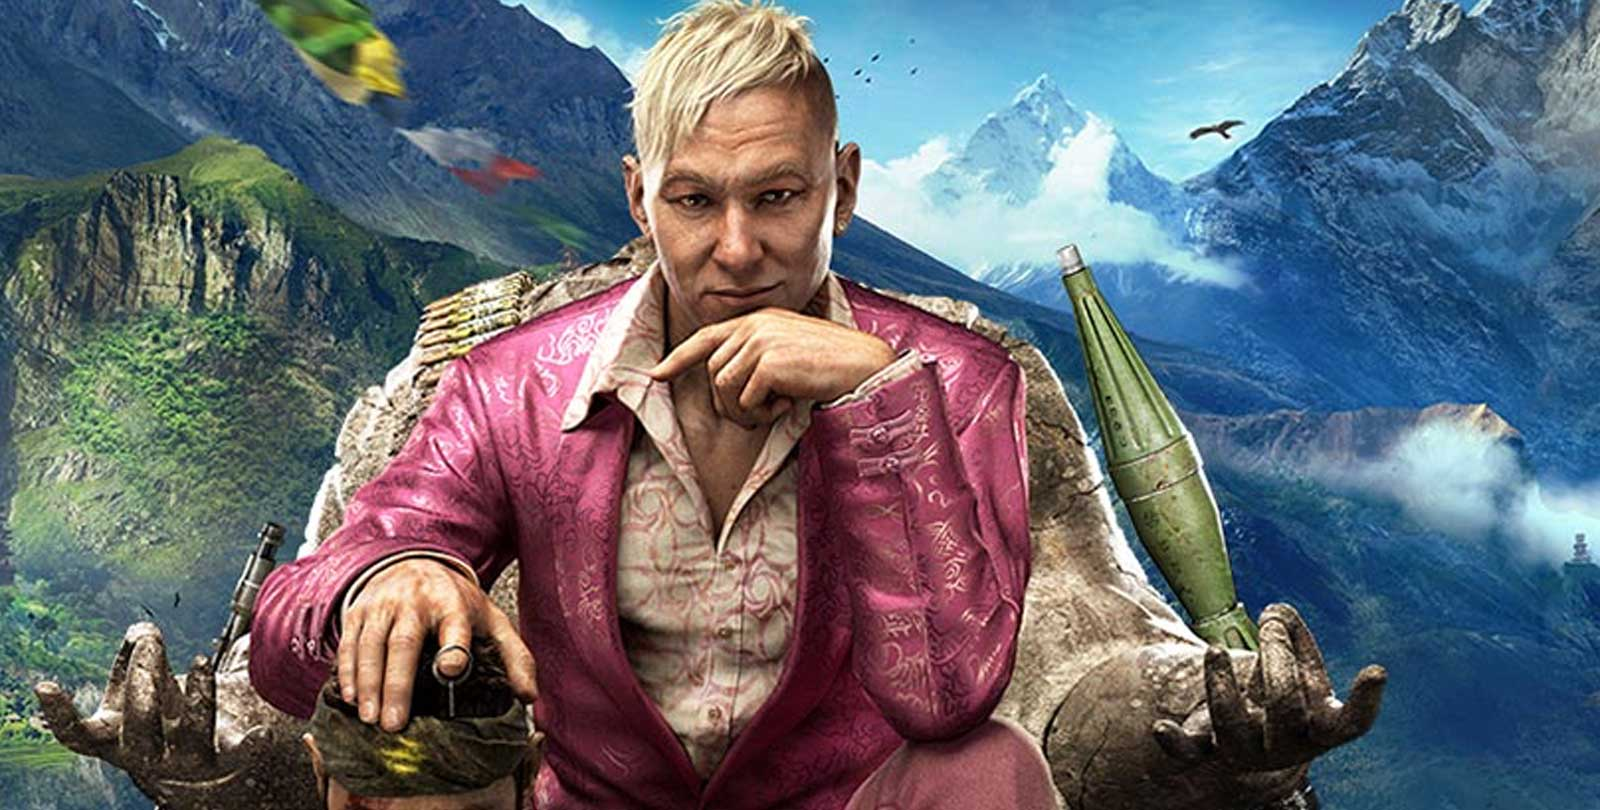 Win a Far Cry 4 Hamper with Megarom Games